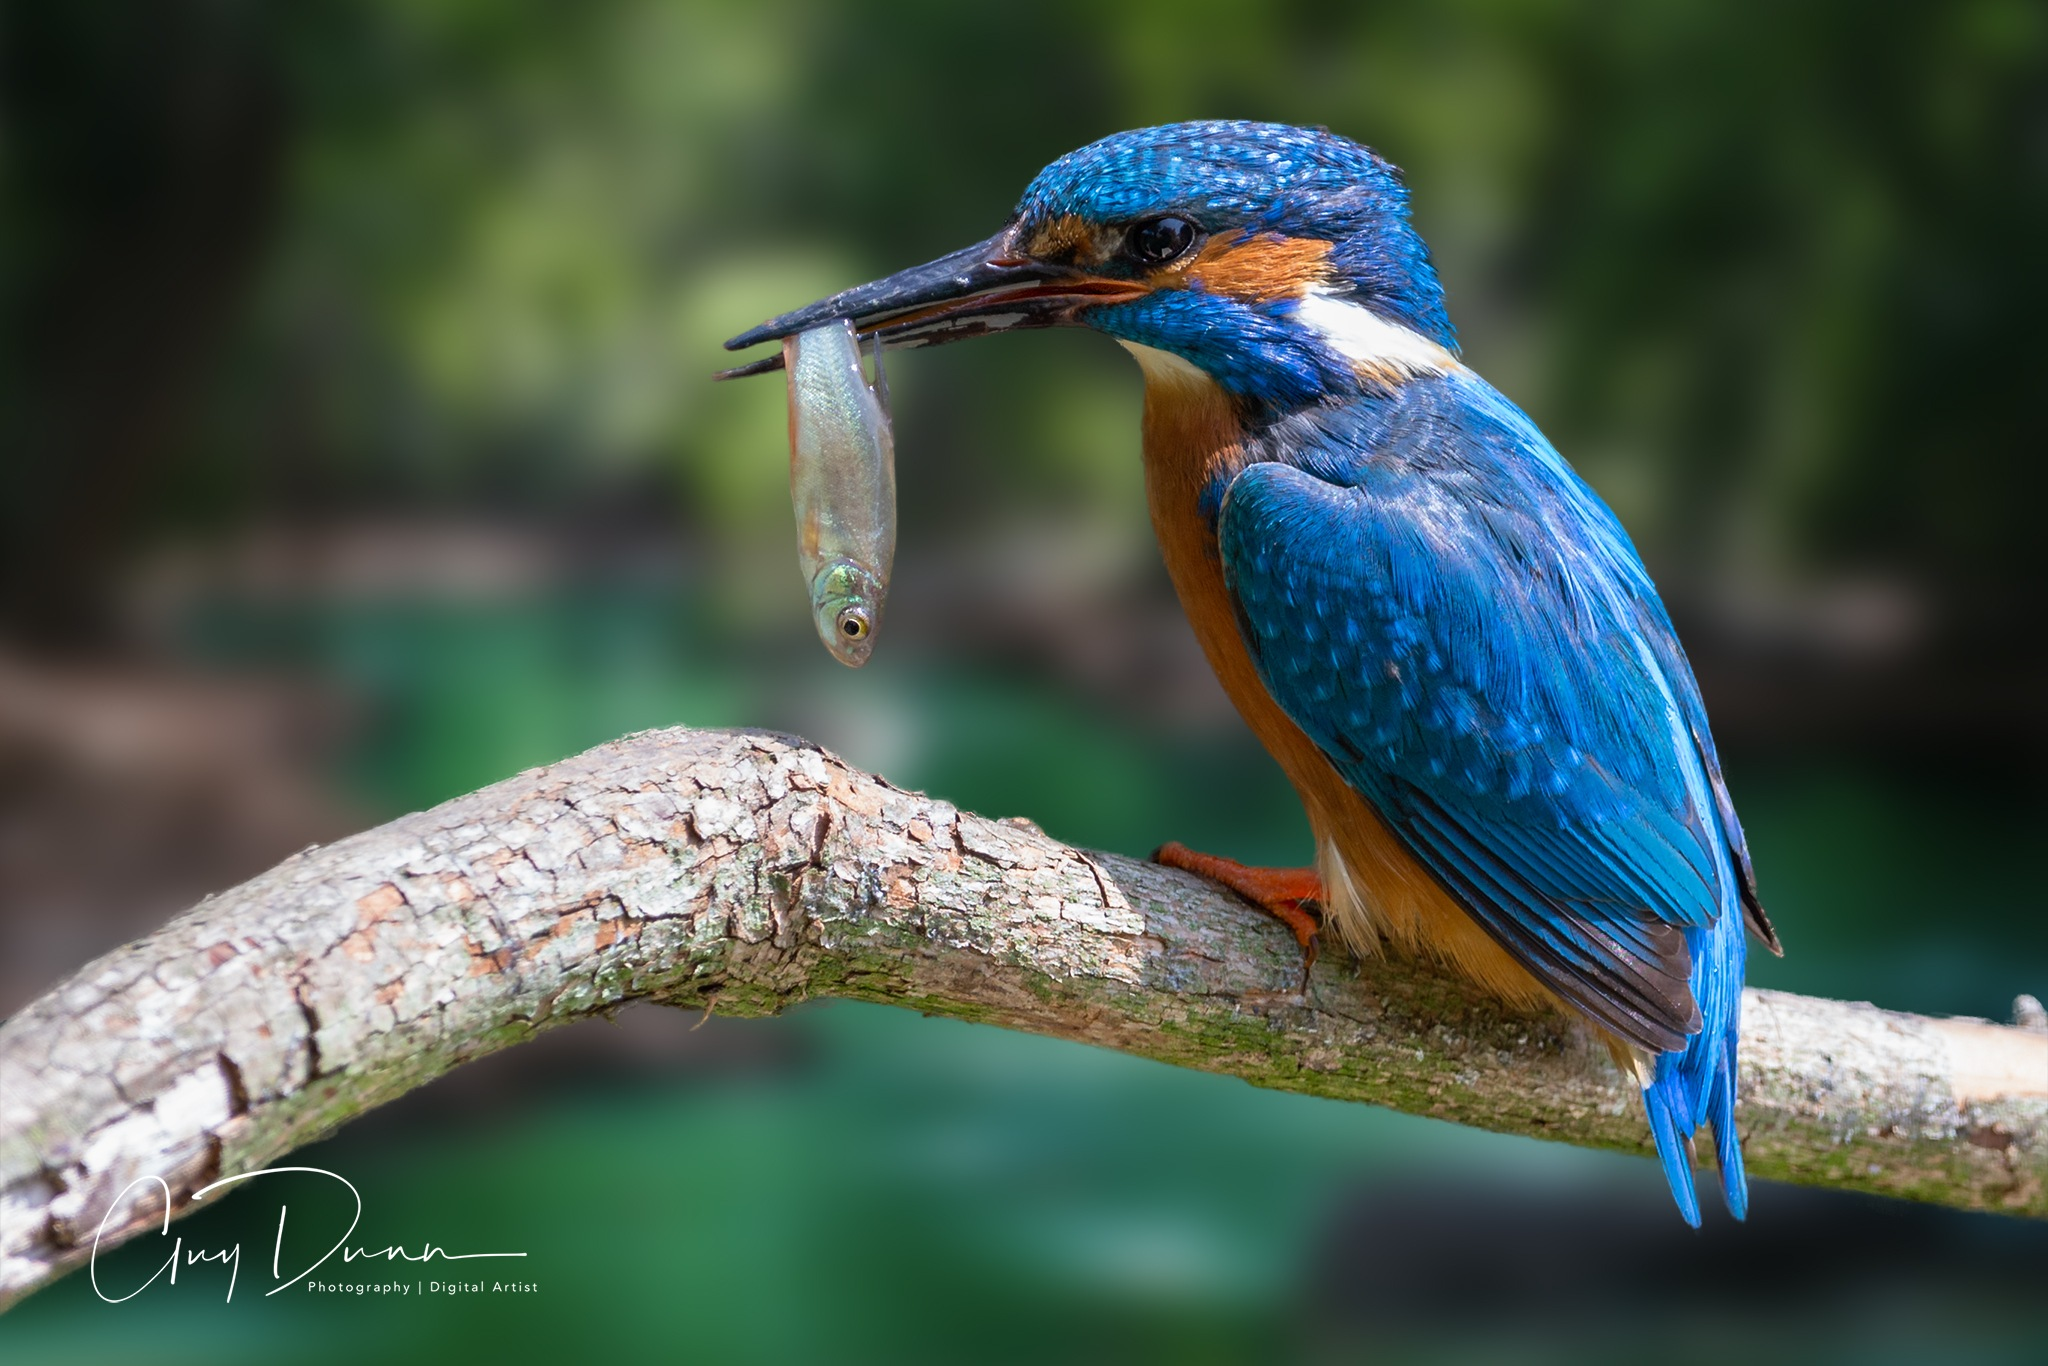 Catch of the day by Guy Dunn